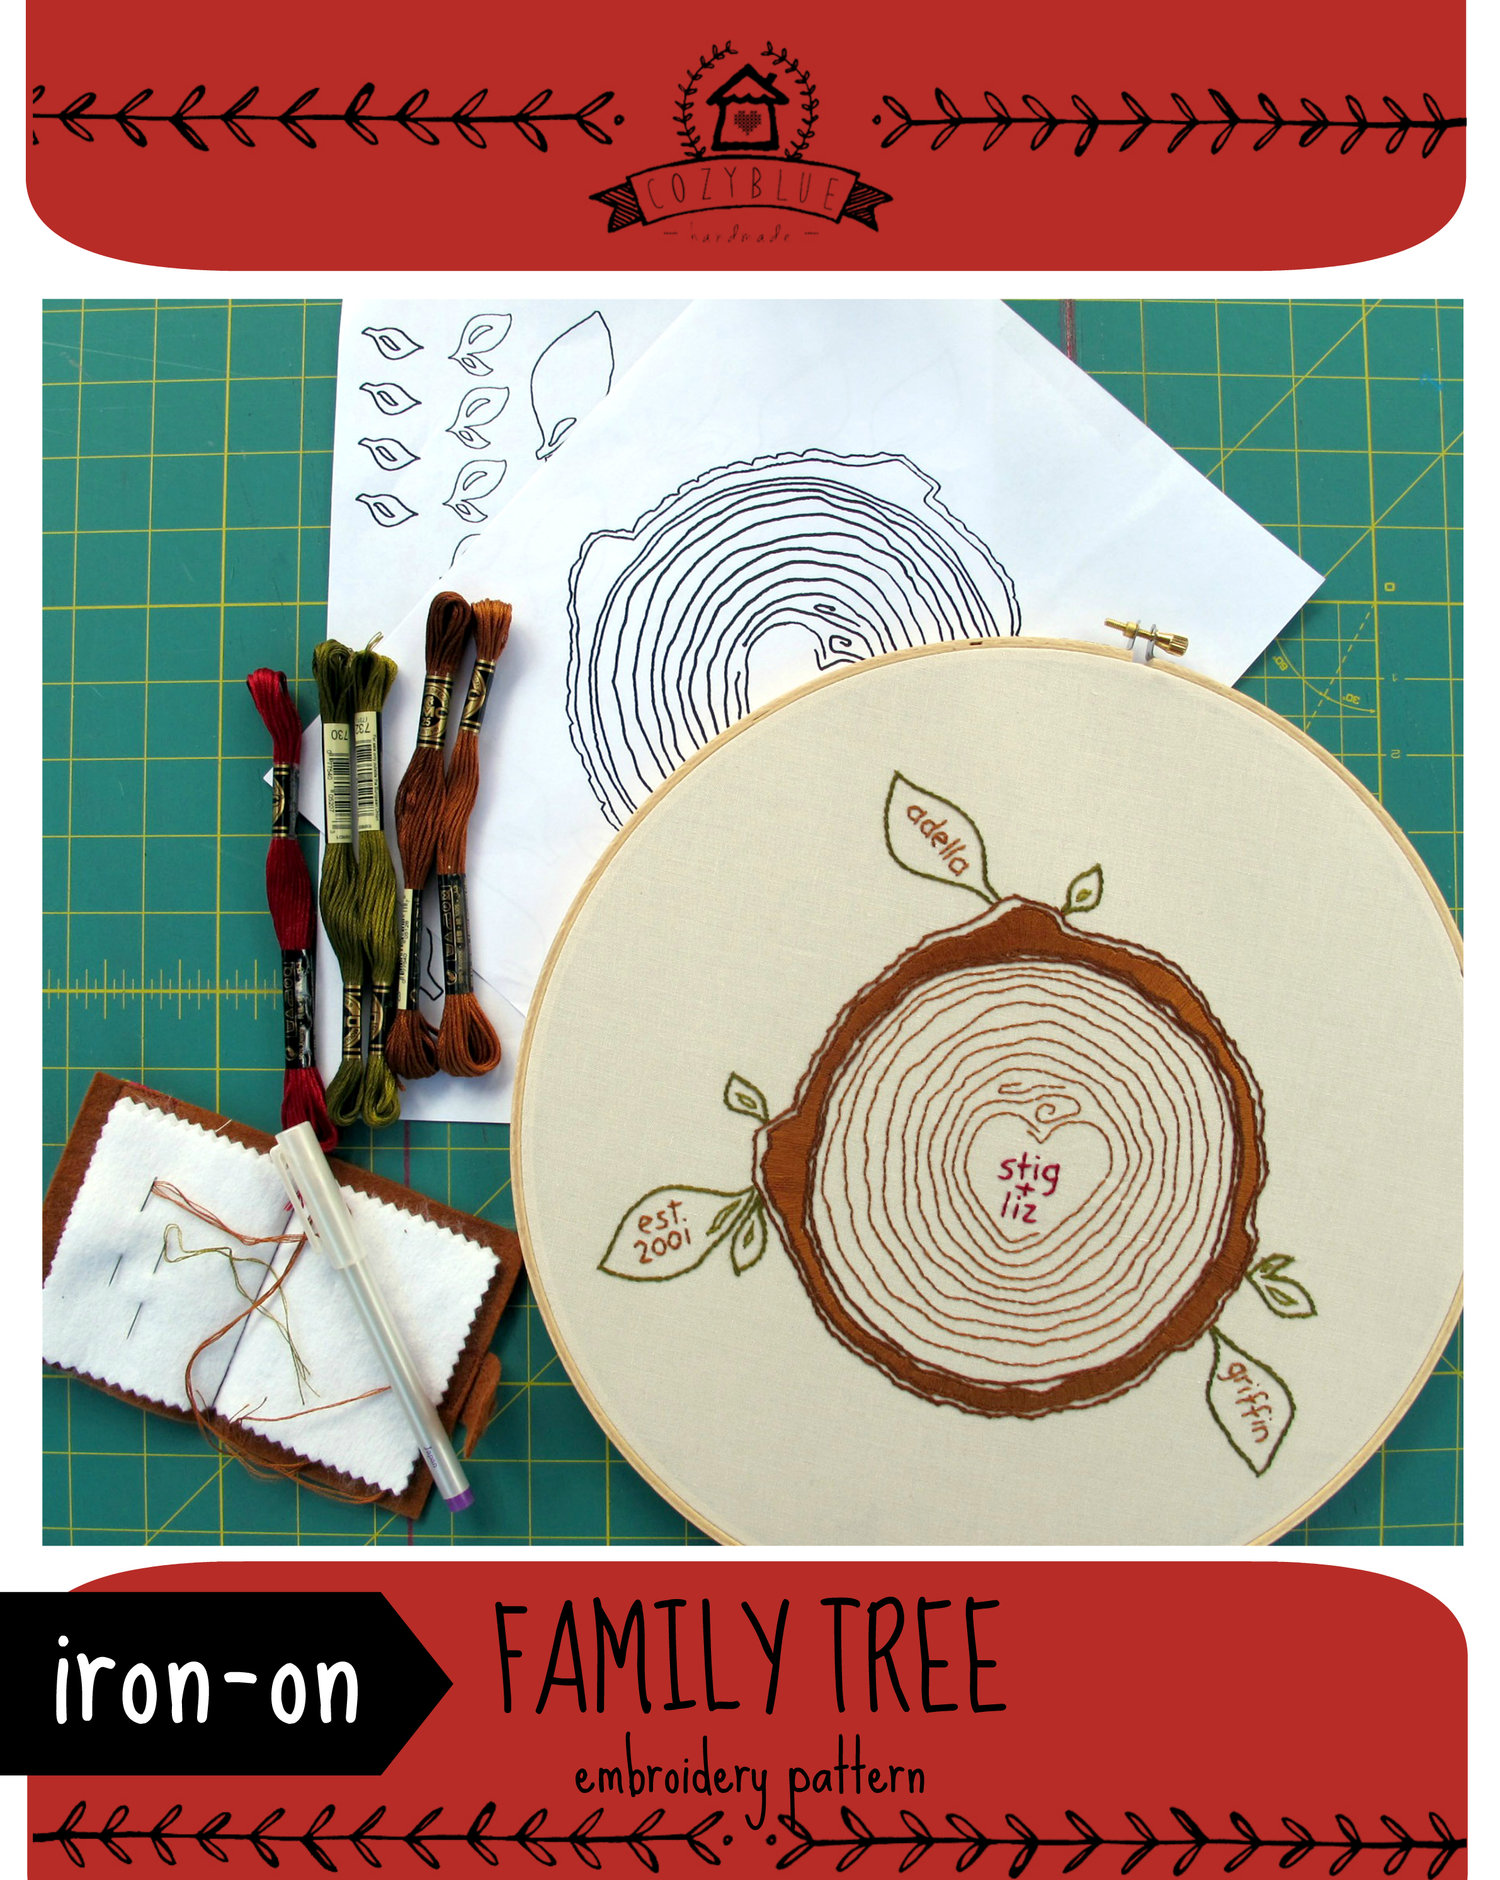 Family tree iron on embroidery pattern cozyblue handmade family tree iron on embroidery pattern bankloansurffo Choice Image